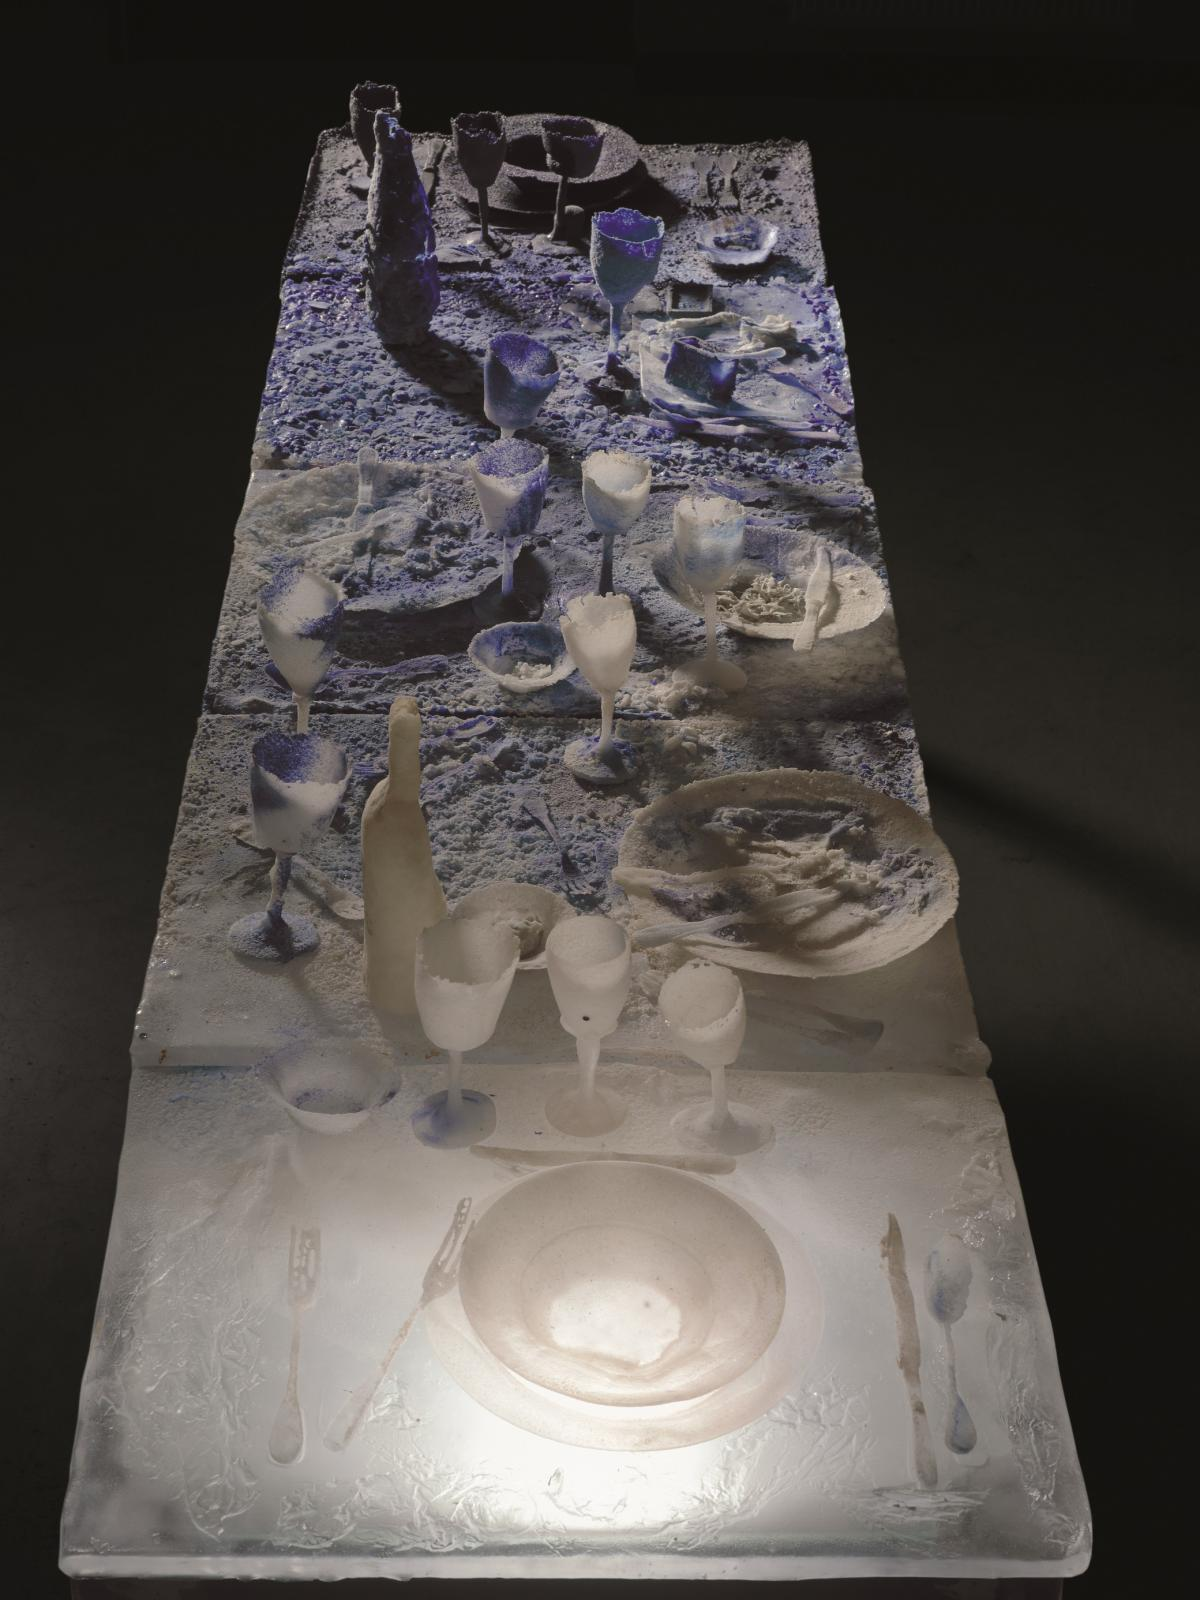 Joan Crous, Cenae 9, pâte de verre, 2008, 110 x 250 x 70 cm, collection MusVerre.